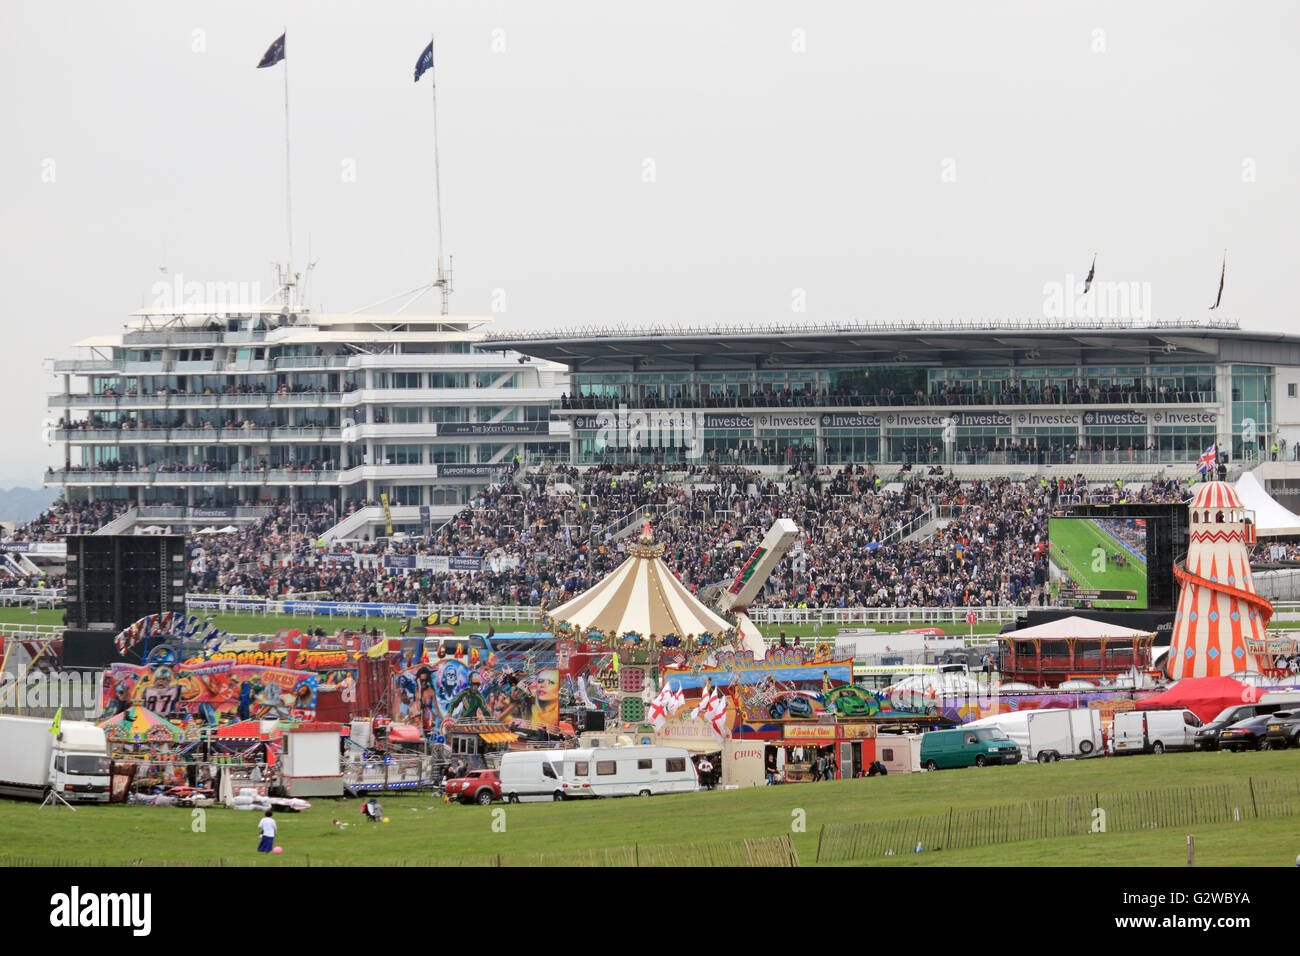 Epsom Downs, Surrey, England, UK. 3rd June 2016. Ladies Day at Epsom Downs race course. The traditional fun fair - Stock Image